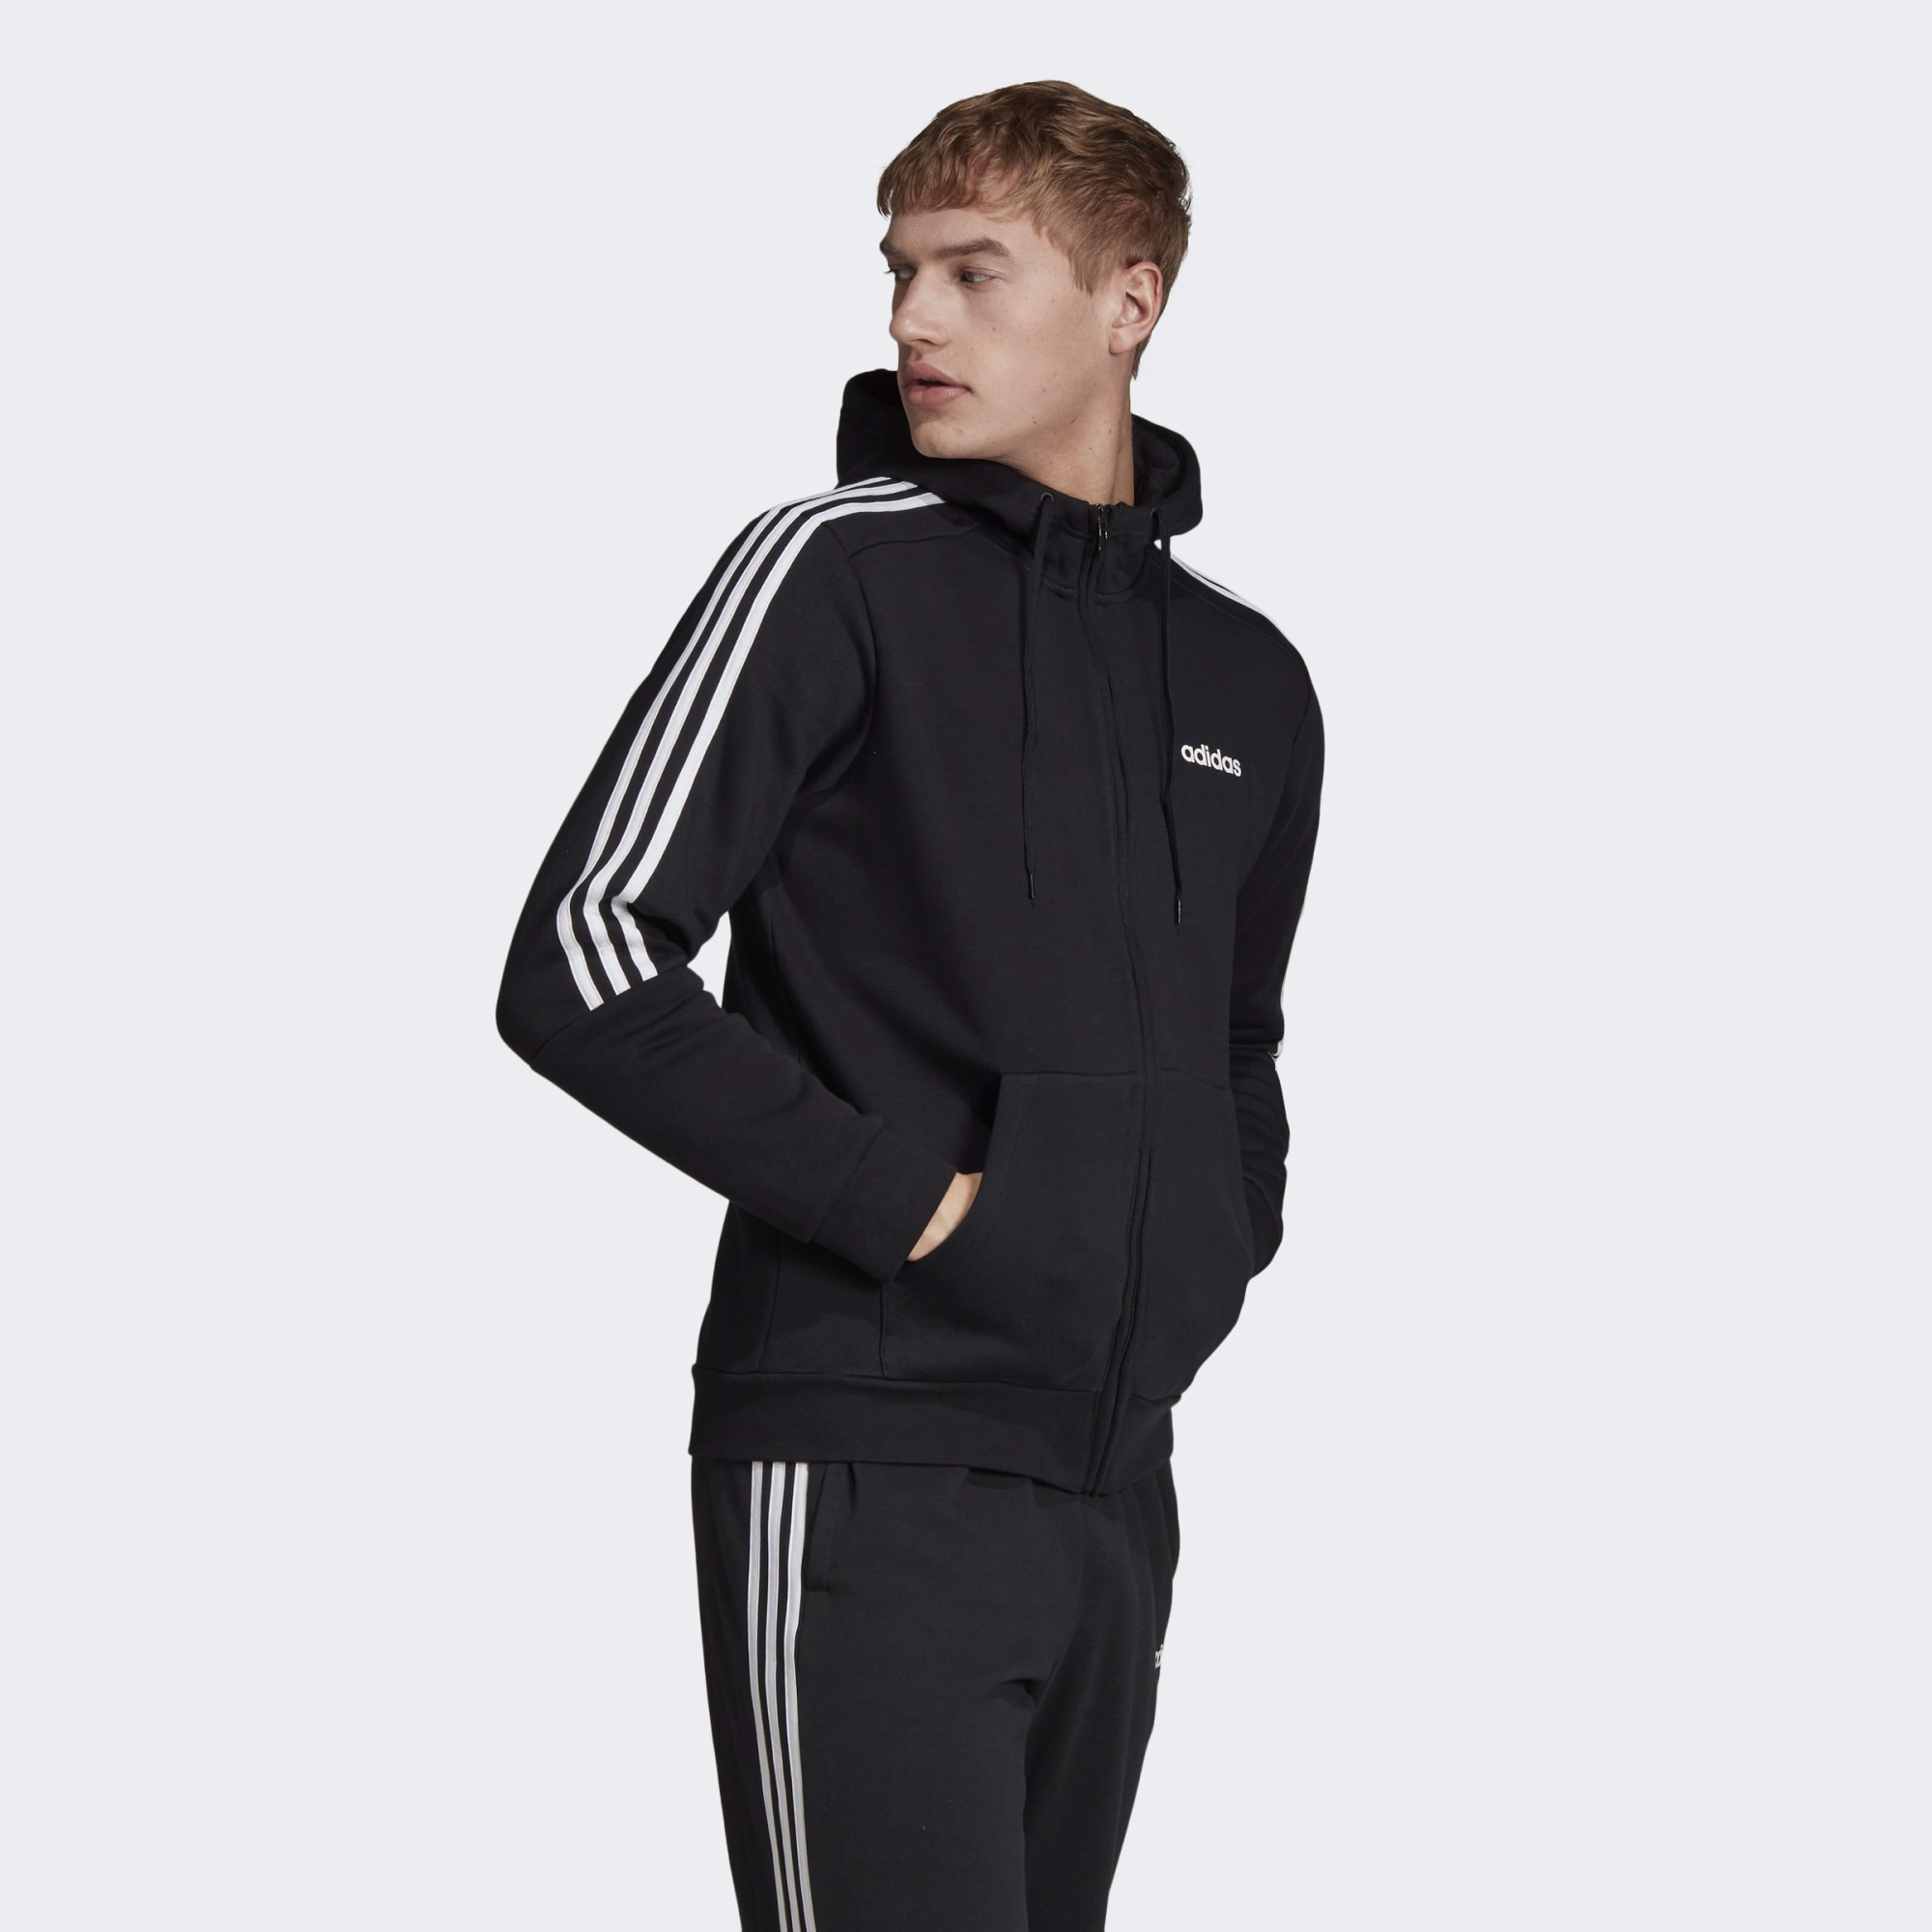 3-STRIPES TRACK JACKET